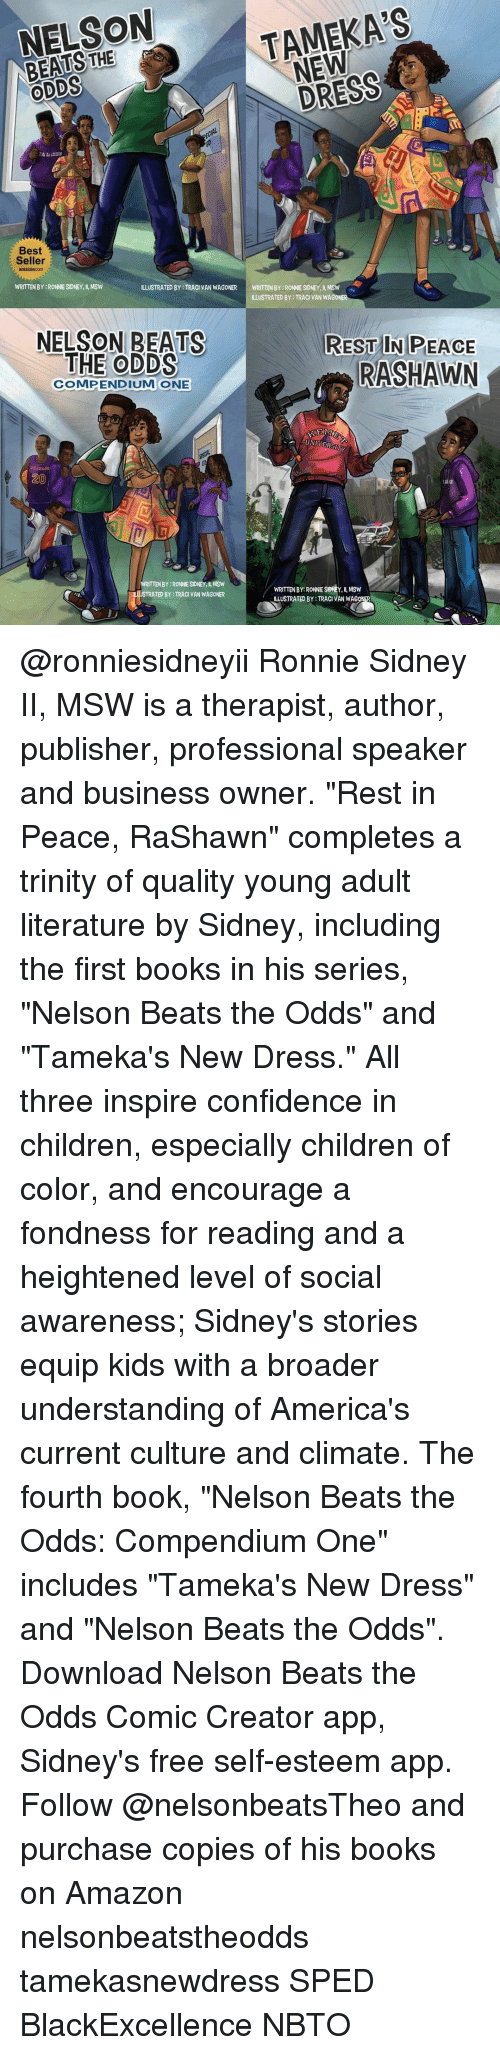 "Amazon, Books, and Children: NELSON  NEW  a ODDS  Best  Seller  WRITTEN BY RONNE SDNEY, MSW  ILLUSTRATED BY TRACI VAN WAGONER  WRITTENBY:RONNESIDNEY, ll, MSW  ILLUSTRATED BY: TRACI VAN WAGO  NELSON BEATS  REST IN PEACE  THE ODDS  RASHAWN  COMPENDIUM ONE  KE  UNIVERSITY  ITTENBY RONNESDNEY, MSW  WRITTEN BY: RONNE SIONEY, MSW  TRATED BY TRACI VAN WAGONER  ILLUSTRATED BY:TRACI VAN WAG @ronniesidneyii Ronnie Sidney II, MSW is a therapist, author, publisher, professional speaker and business owner. ""Rest in Peace, RaShawn"" completes a trinity of quality young adult literature by Sidney, including the first books in his series, ""Nelson Beats the Odds"" and ""Tameka's New Dress."" All three inspire confidence in children, especially children of color, and encourage a fondness for reading and a heightened level of social awareness; Sidney's stories equip kids with a broader understanding of America's current culture and climate. The fourth book, ""Nelson Beats the Odds: Compendium One"" includes ""Tameka's New Dress"" and ""Nelson Beats the Odds"". Download Nelson Beats the Odds Comic Creator app, Sidney's free self-esteem app. Follow @nelsonbeatsTheo and purchase copies of his books on Amazon nelsonbeatstheodds tamekasnewdress SPED BlackExcellence NBTO"